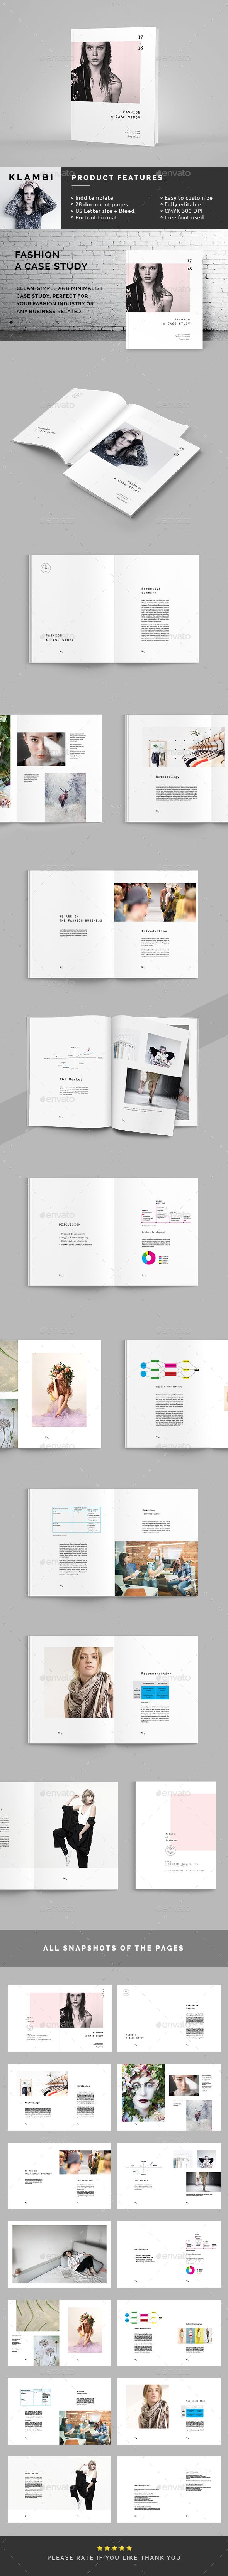 78 best Case Study Templates images on Pinterest